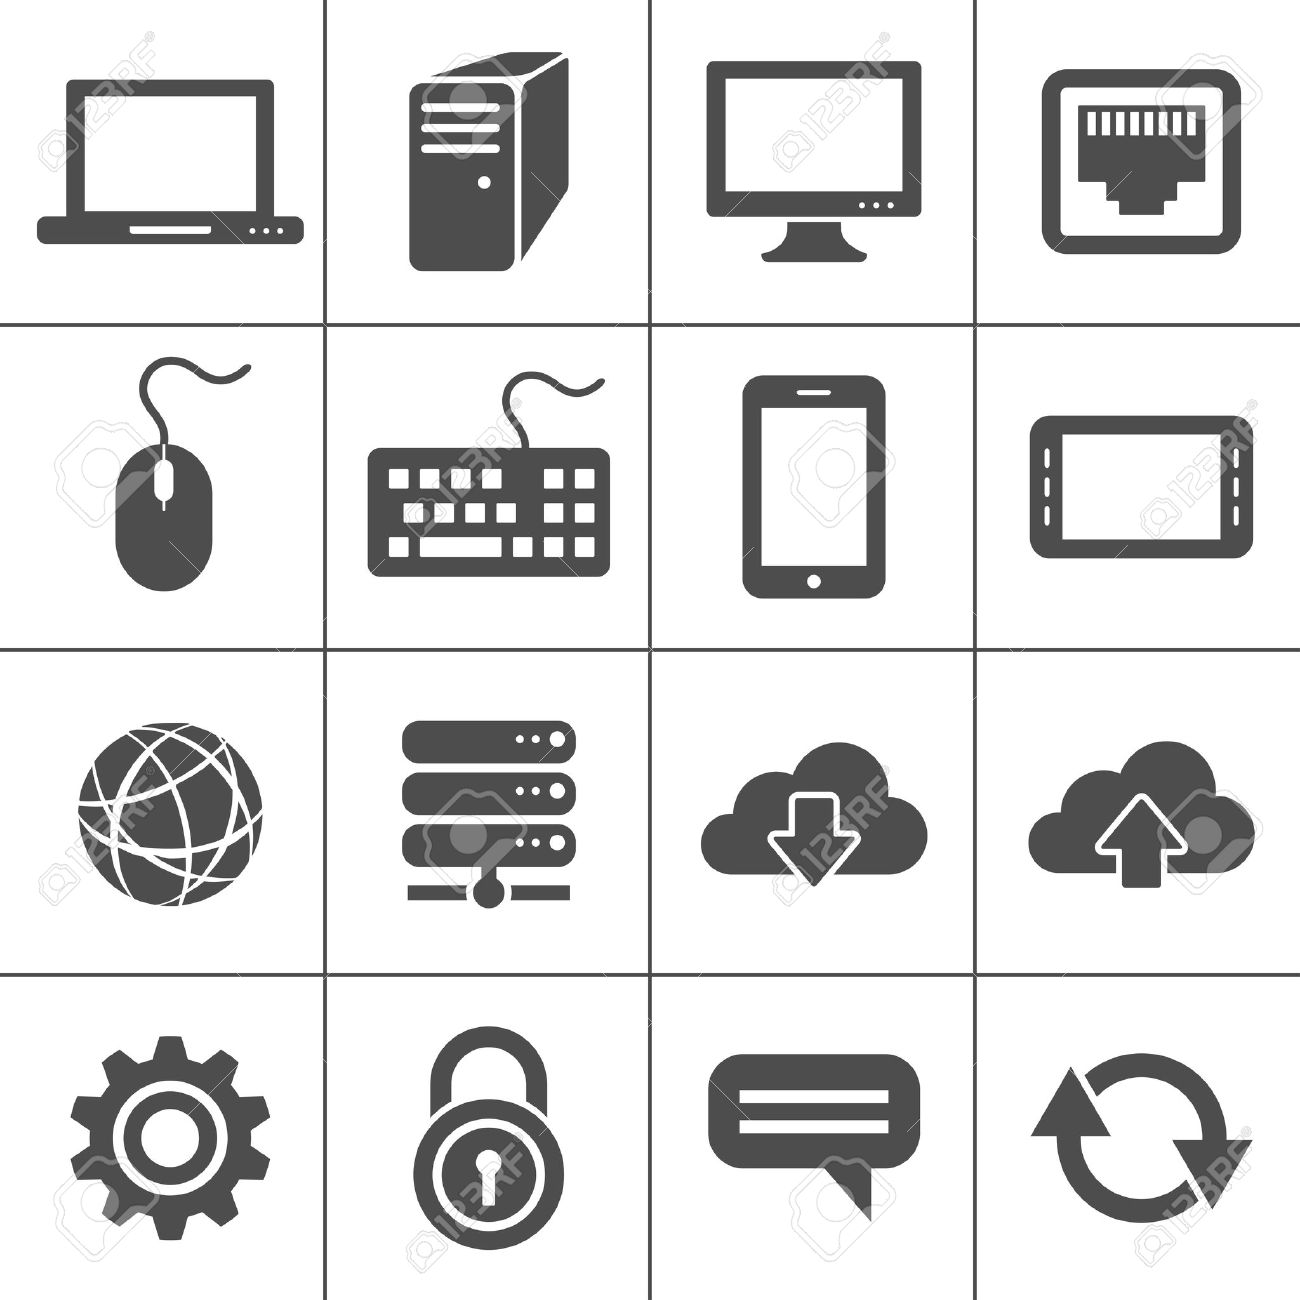 Simplus icons series  Network and mobile devices  Network connections Stock Vector - 15118849